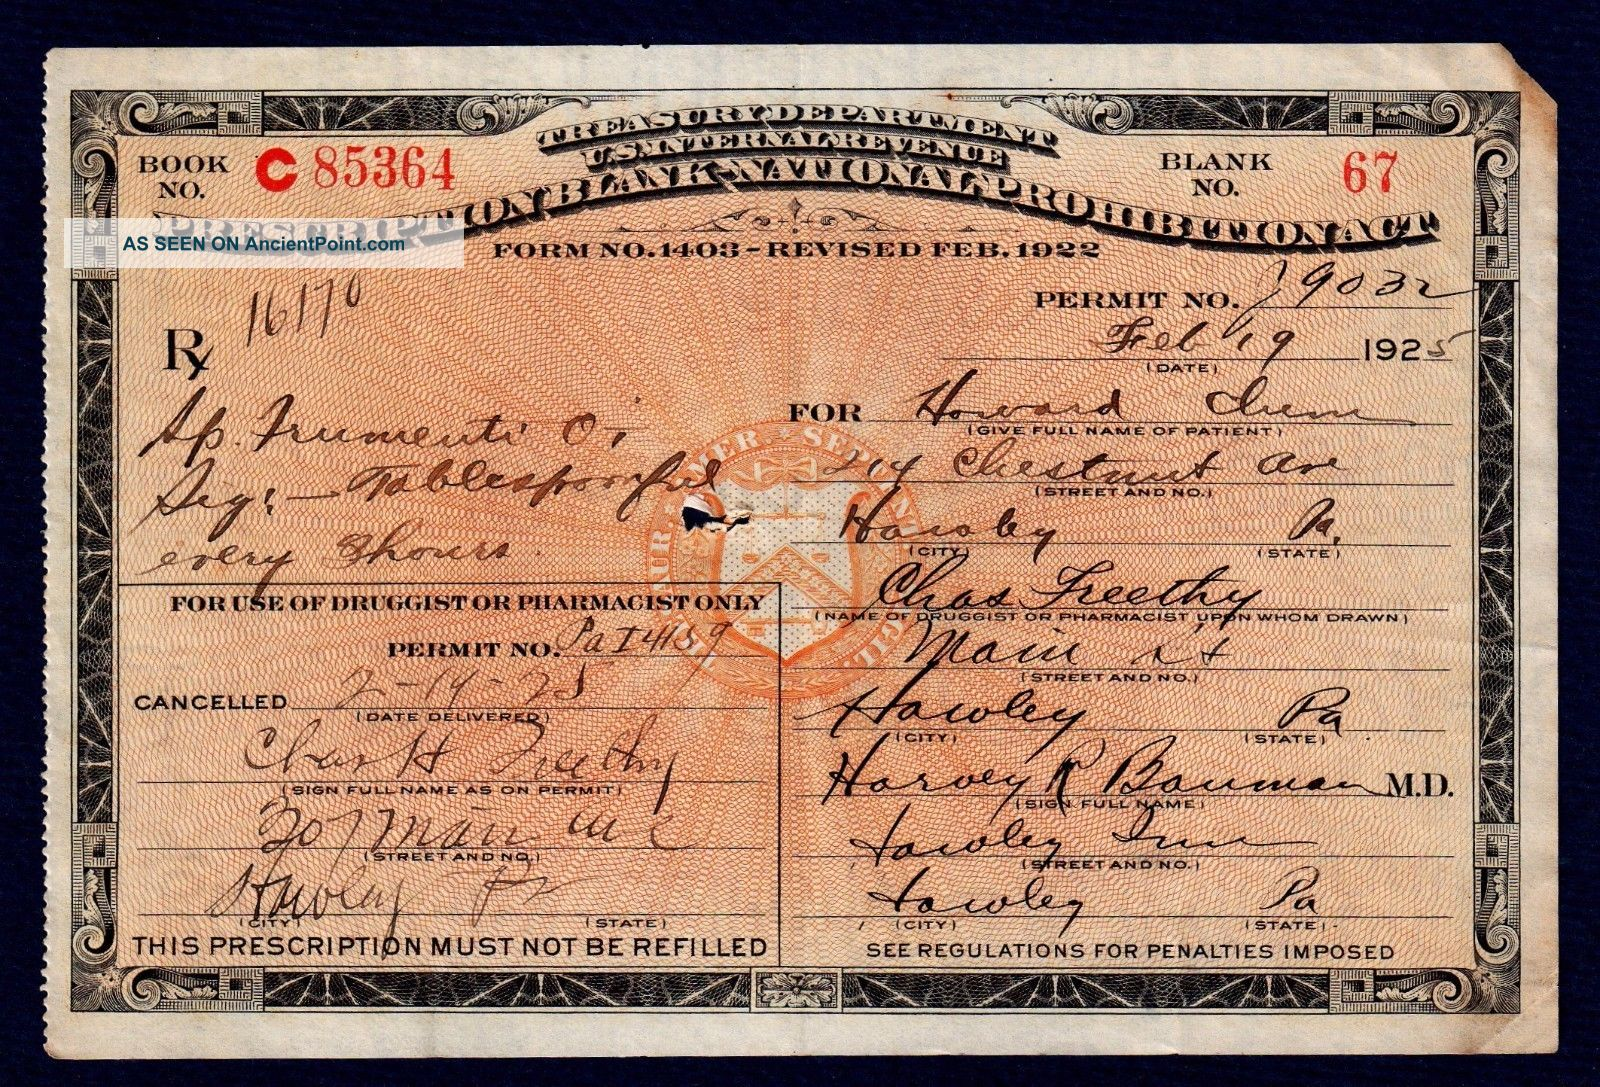 Old 1925 Alcohol Prohibition Prescription Rx Doctor Pharmacy Drug Store Inn Bar Other Medical Antiques photo